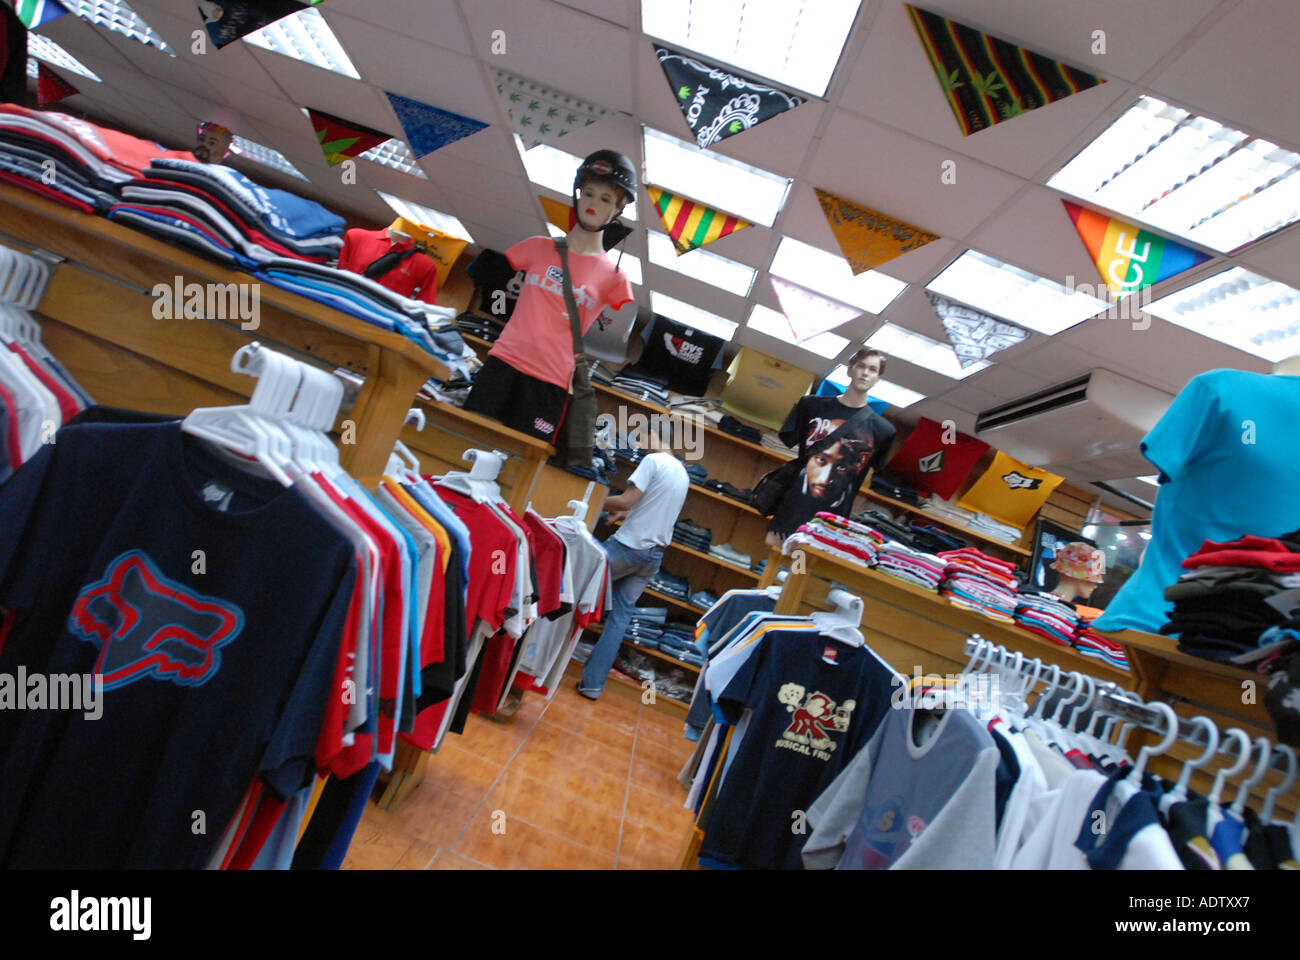 Goods clothing store